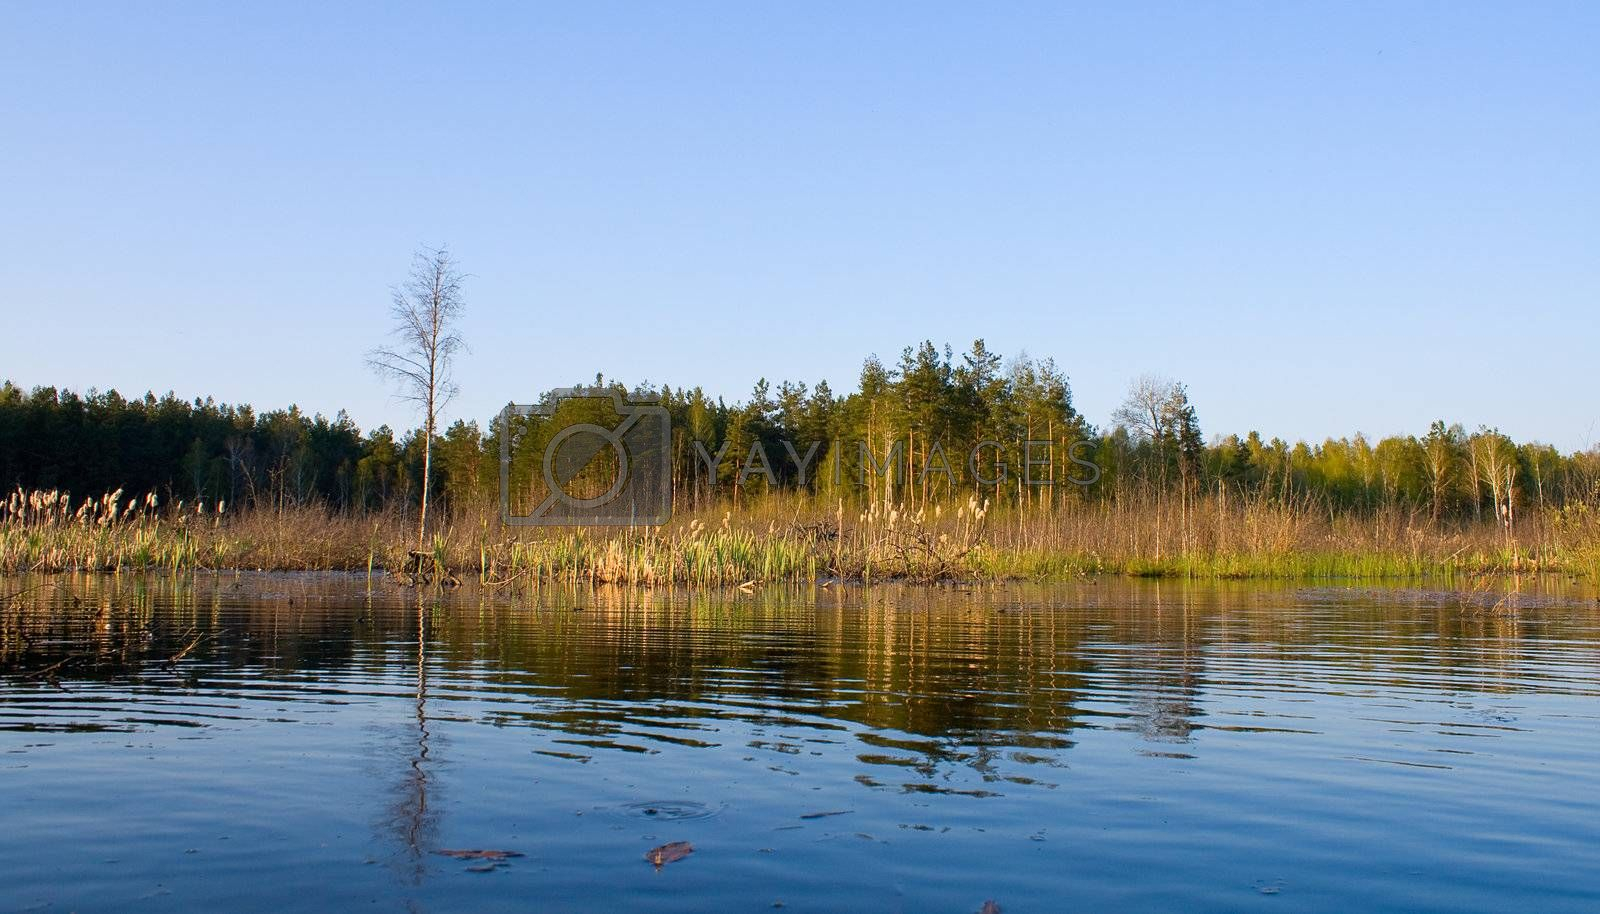 rushy swamp in forest landscape, spring time